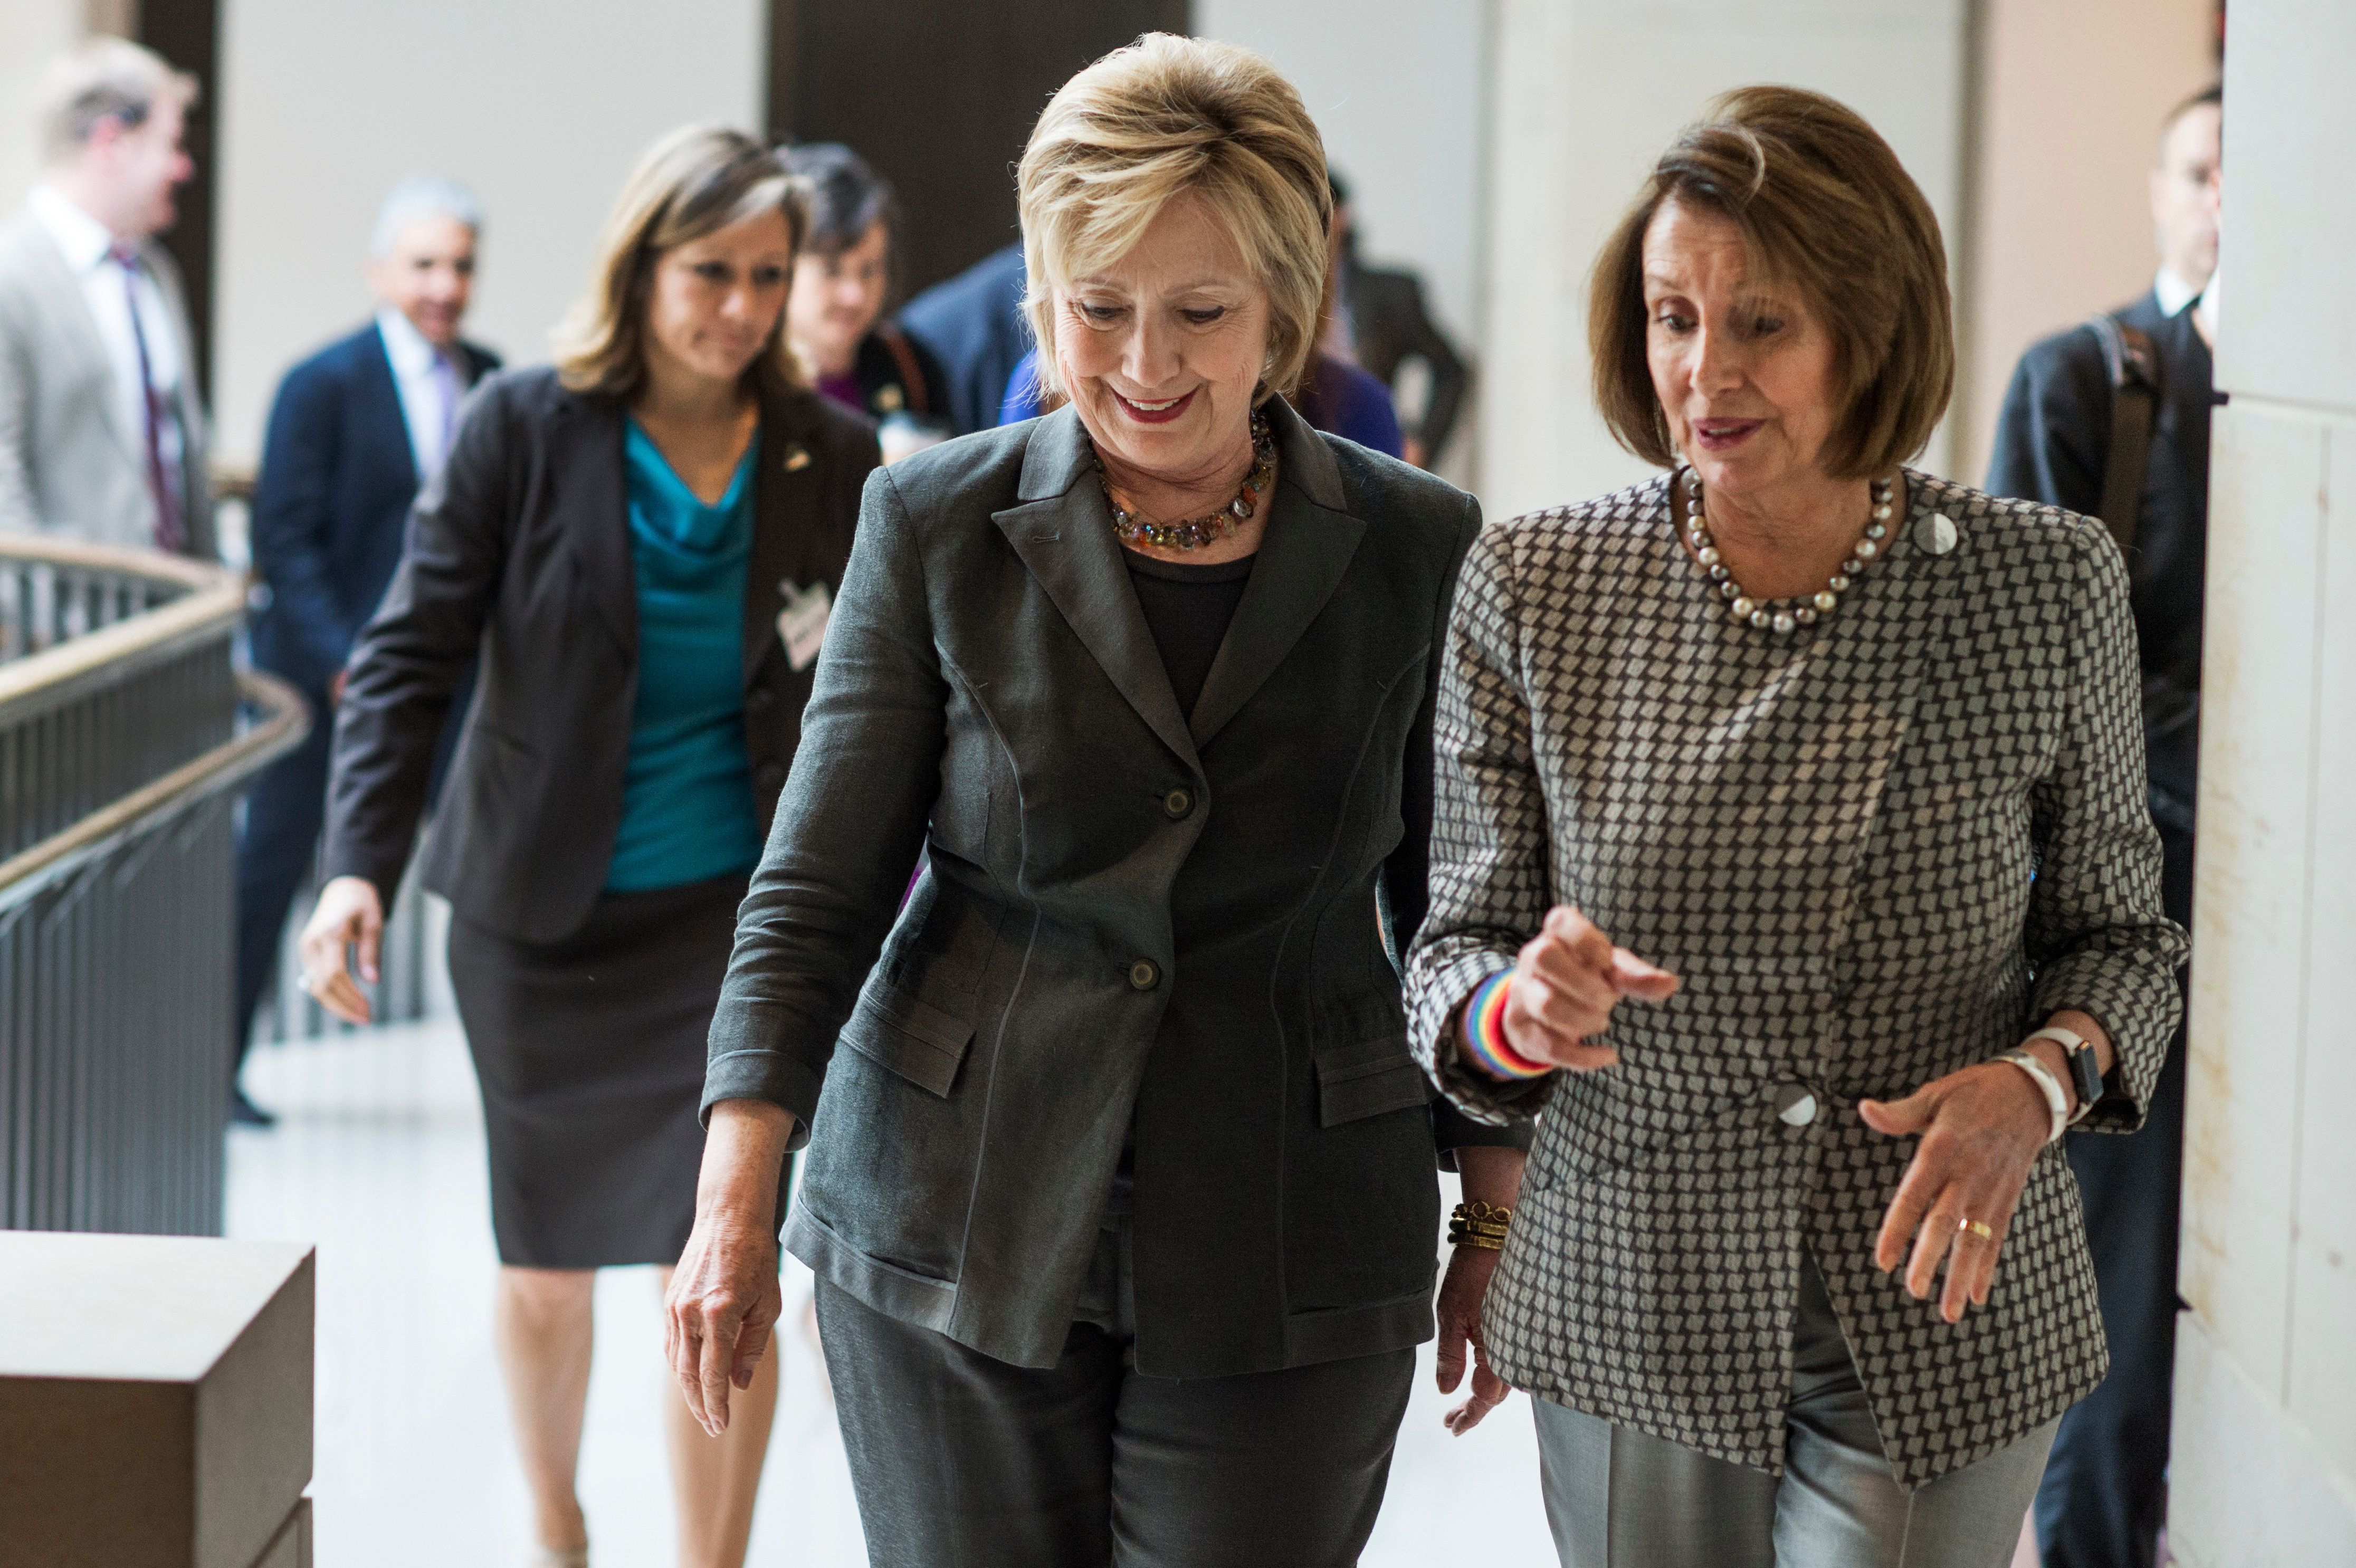 UNITED STATES - JUNE 22: Democratic presidential candidate Hillary Clinton, left, and House Minority Leader Nancy Pelosi, D-Calif., leave a meeting with House Democrats in the Capitol Visitor Center, June 22, 2016. (Photo By Tom Williams/CQ Roll Call)